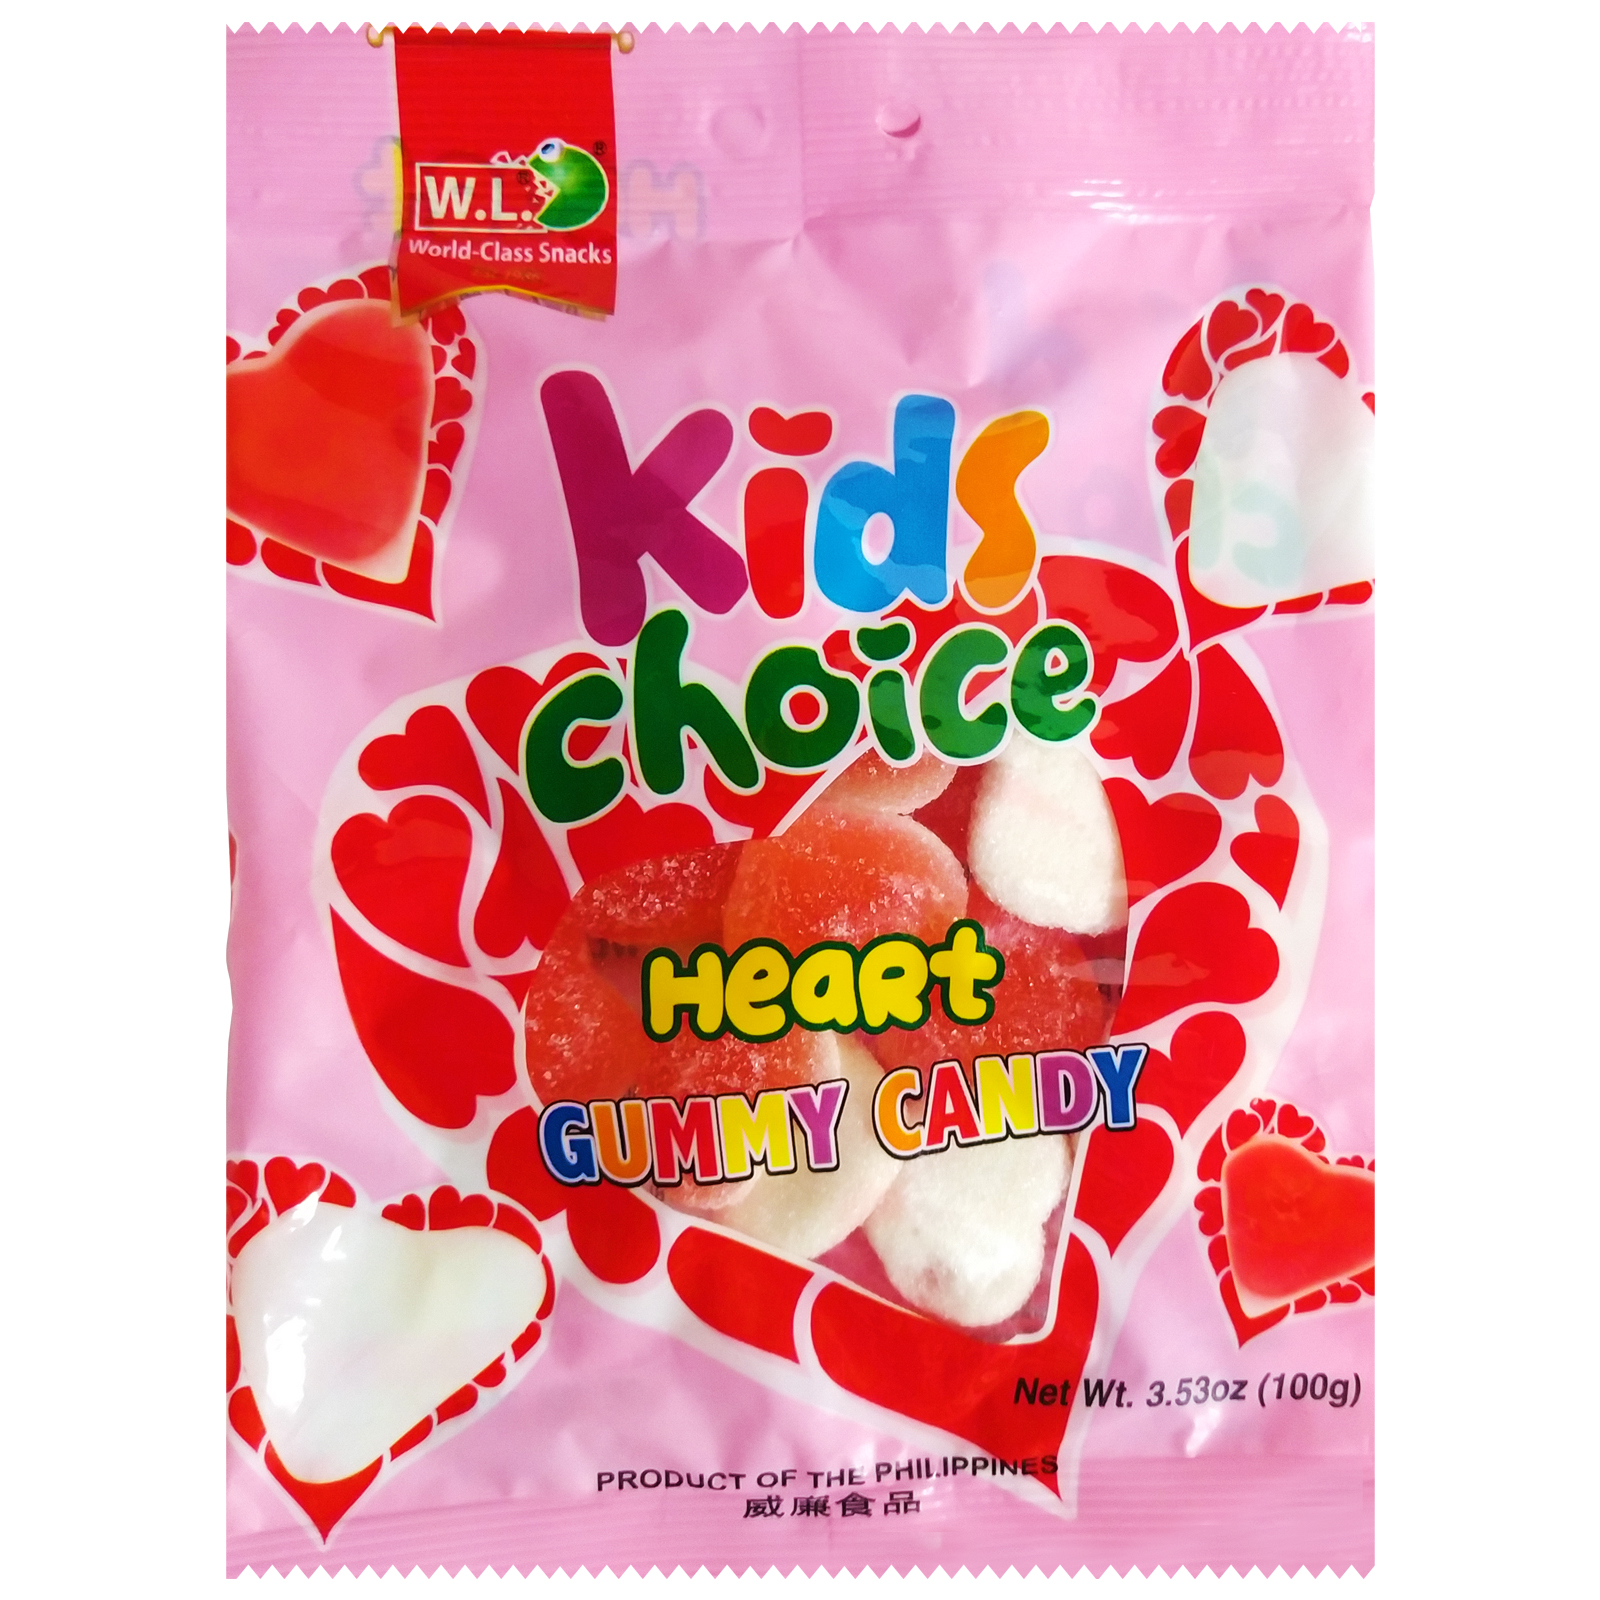 Kids Choice Heart Gummy Candy 100g